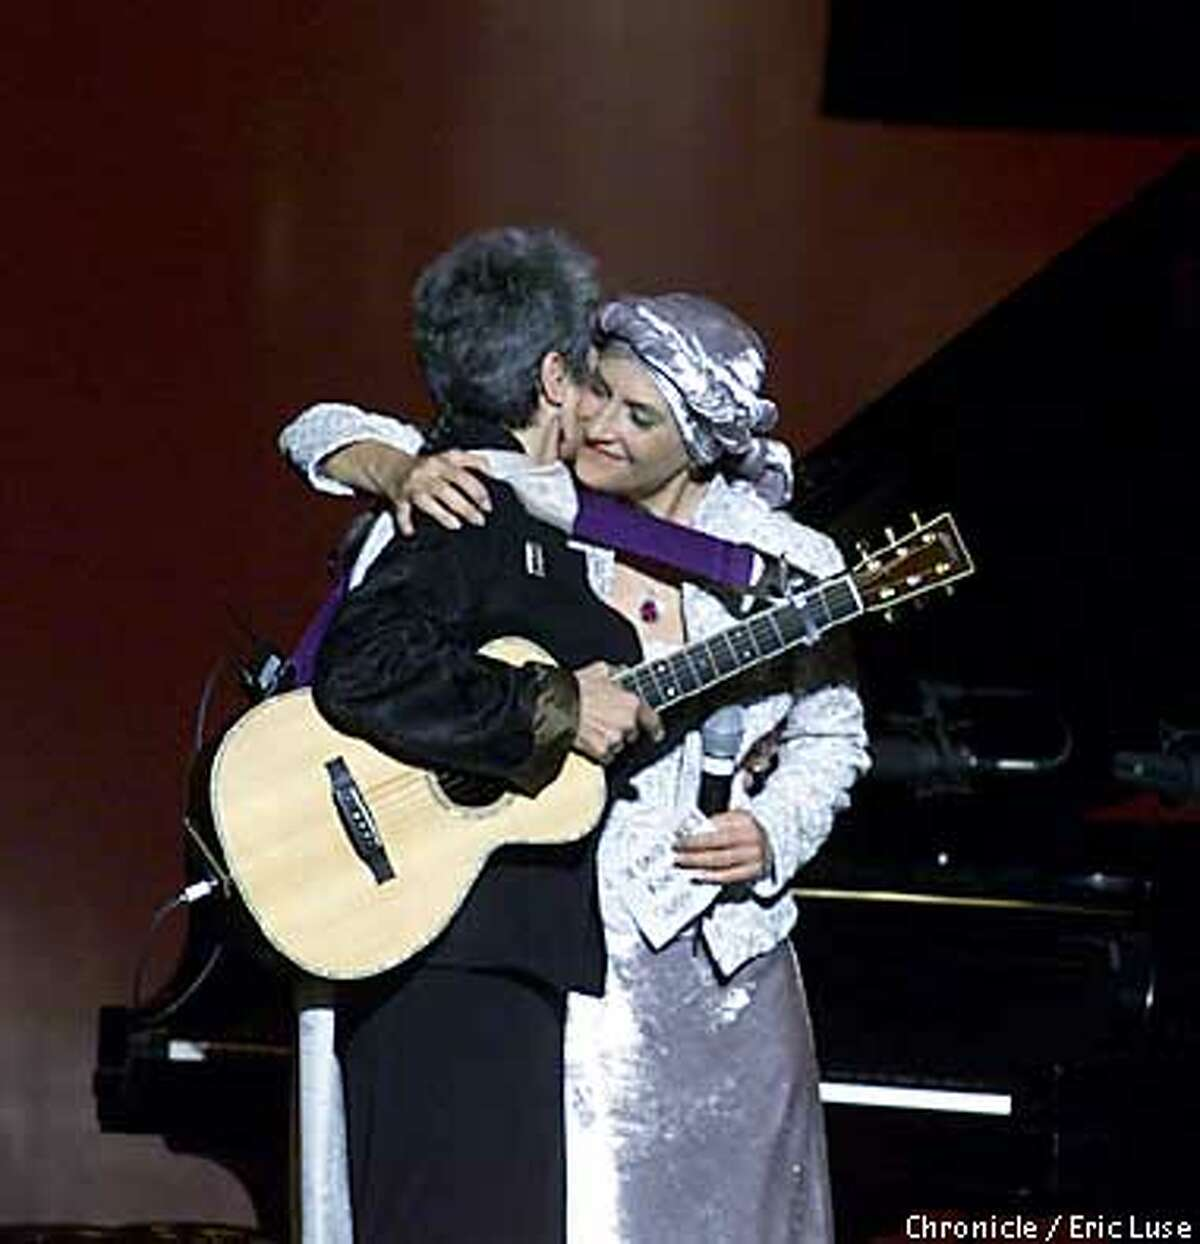 Joan Baez and her sister Mimi Farina embraced at the Bread and Roses Concert at the War Memorial Opera House,SF. BY ERIC LUSE/THE CHRONICLE